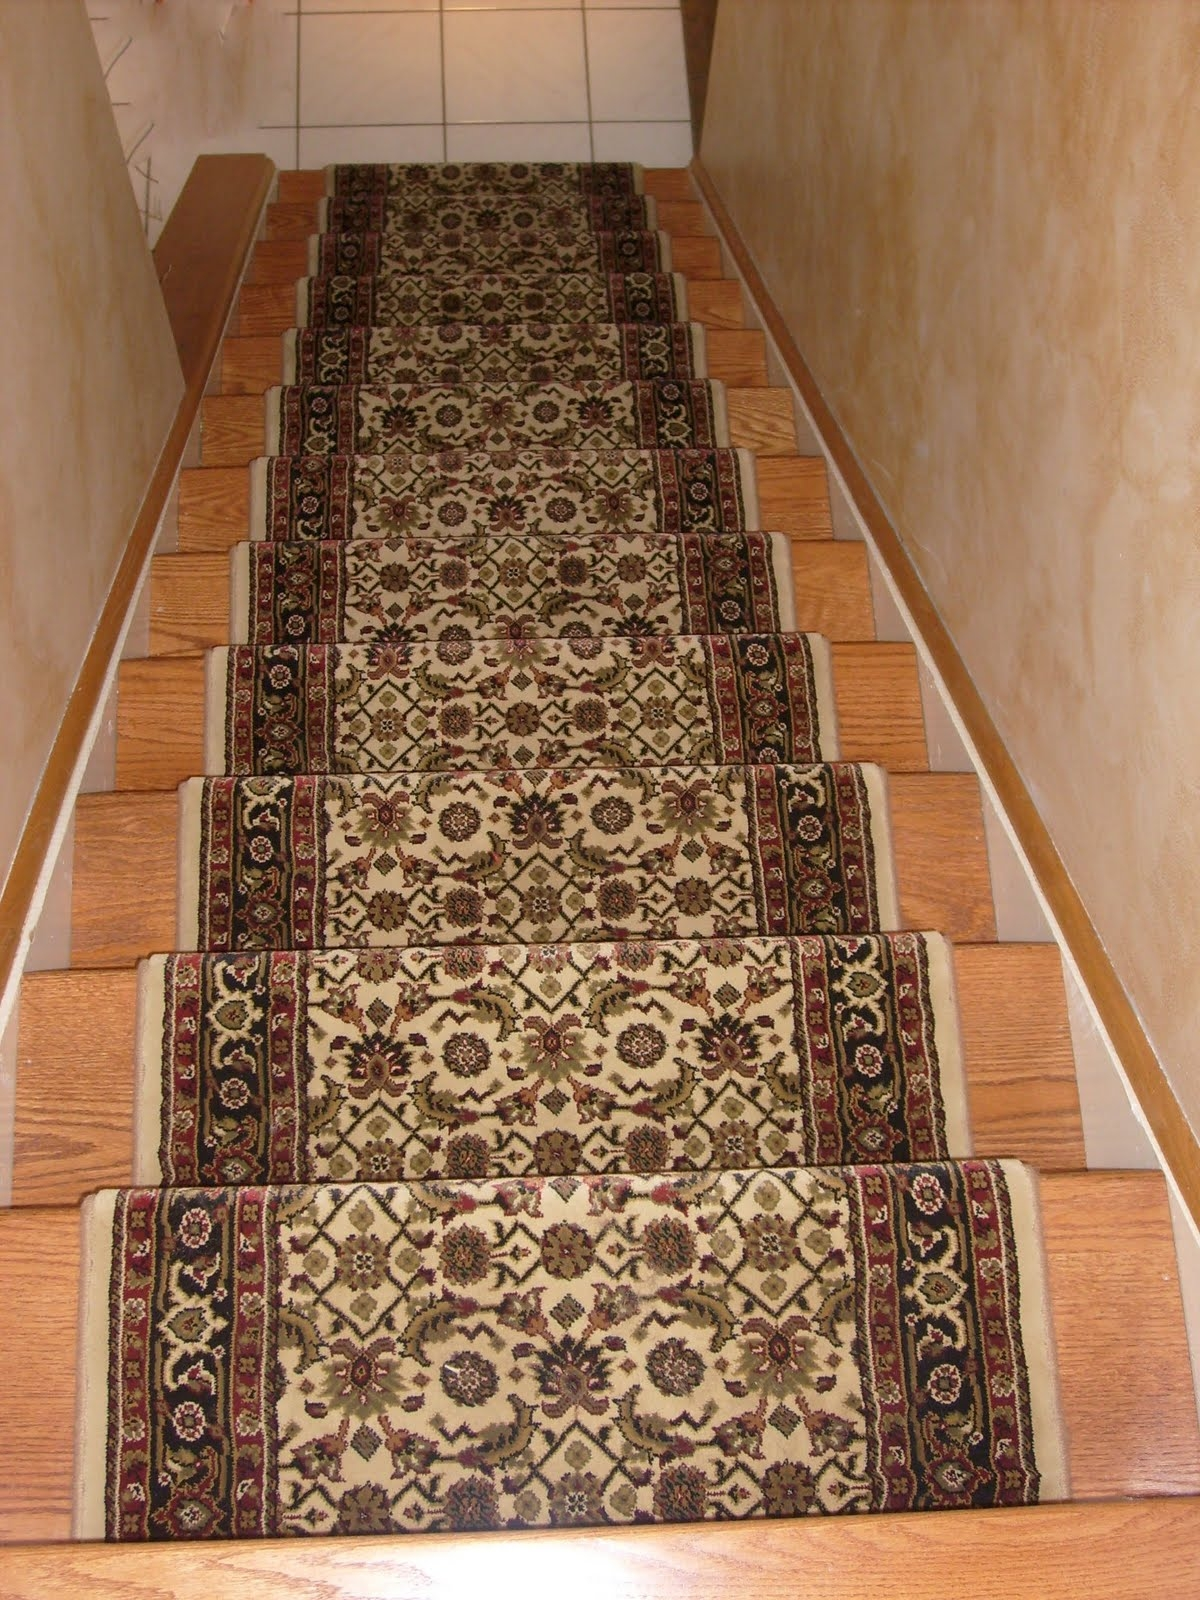 Special Stair Runners Latest Door Stair Design Intended For Rug Runners For Stairs (#13 of 20)